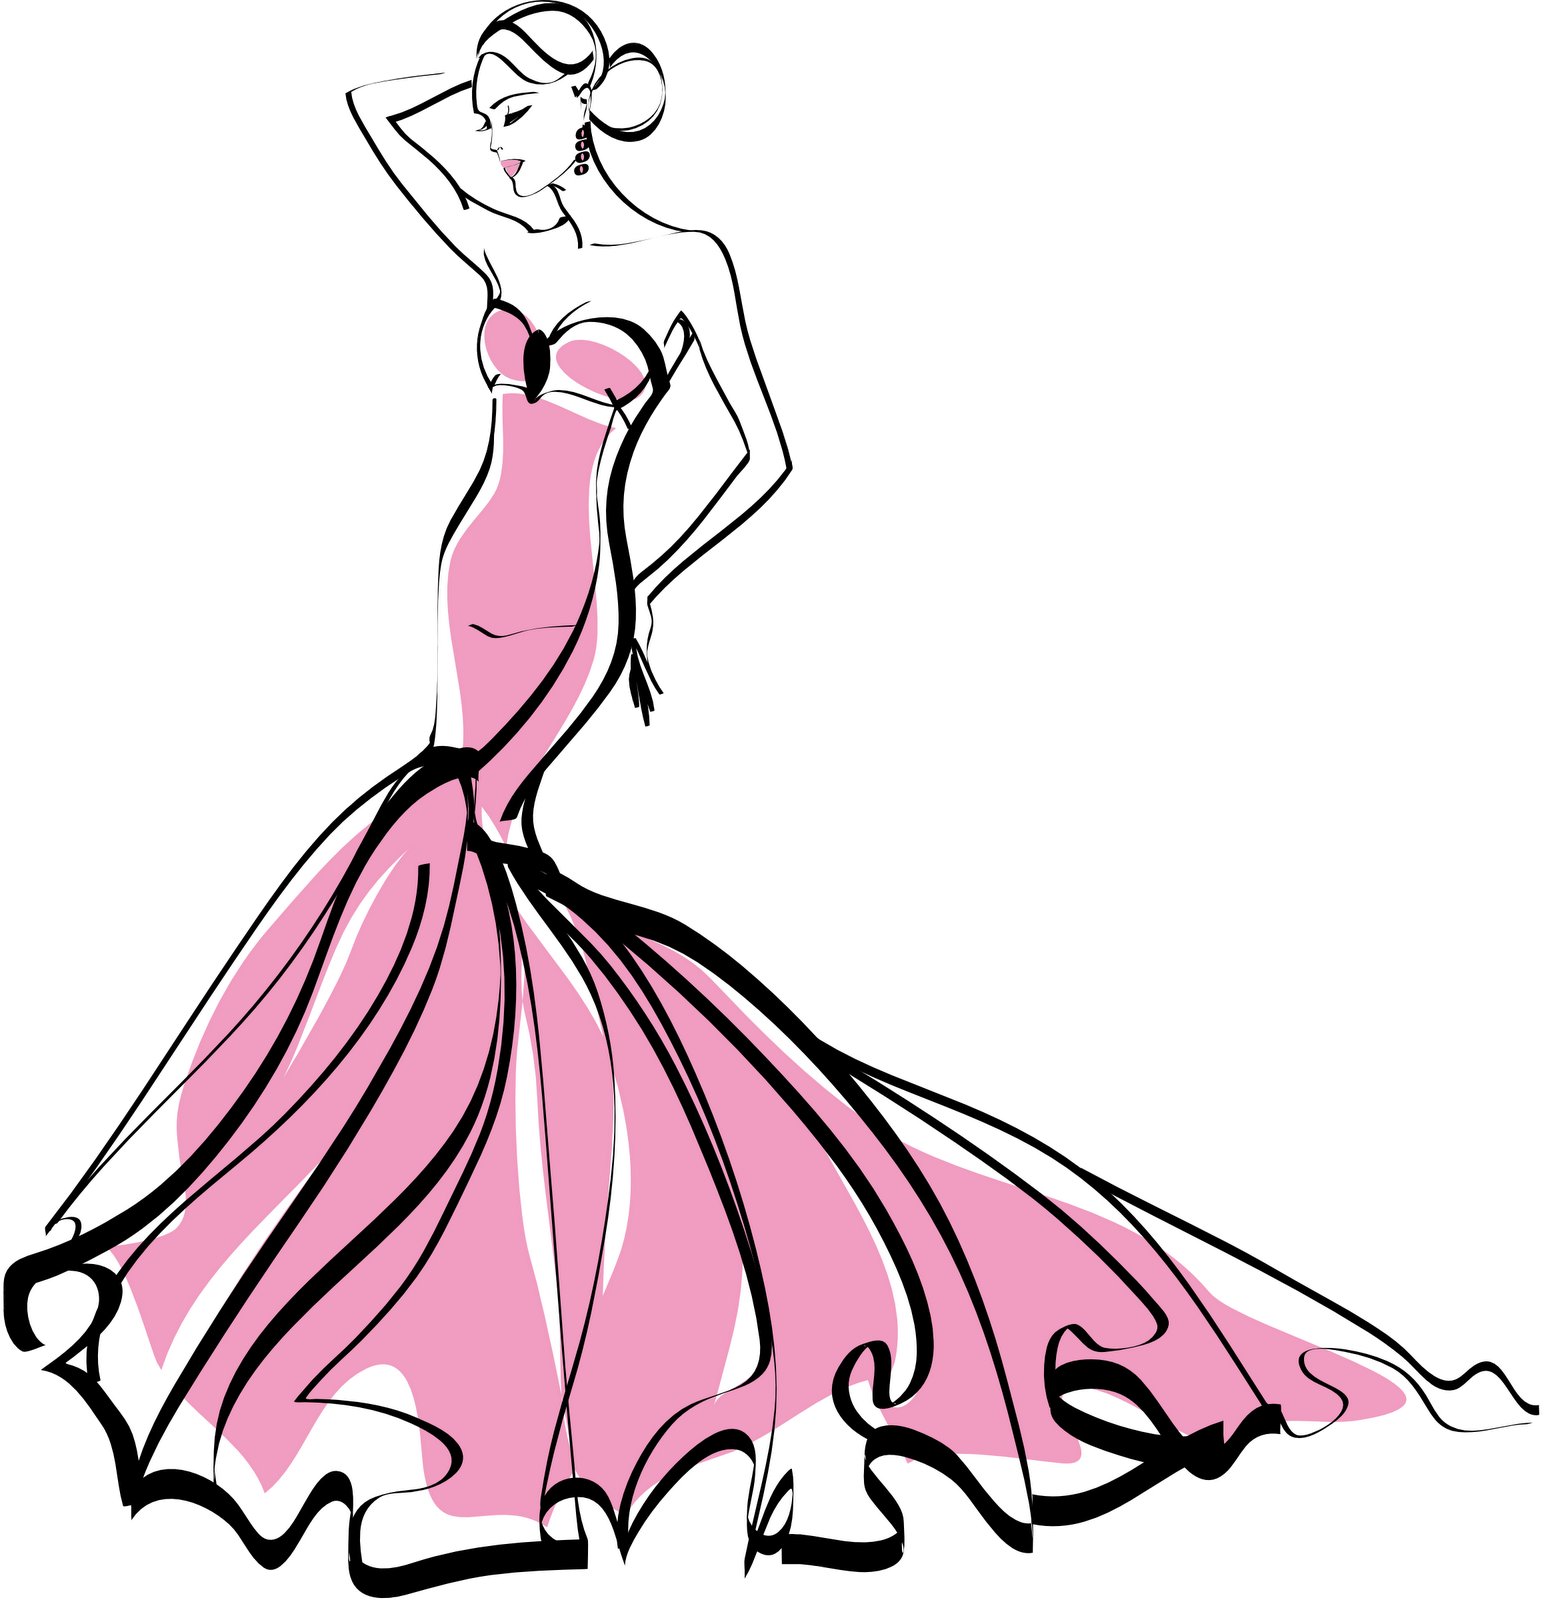 Fashion clipart fashion week. Png transparent professional images